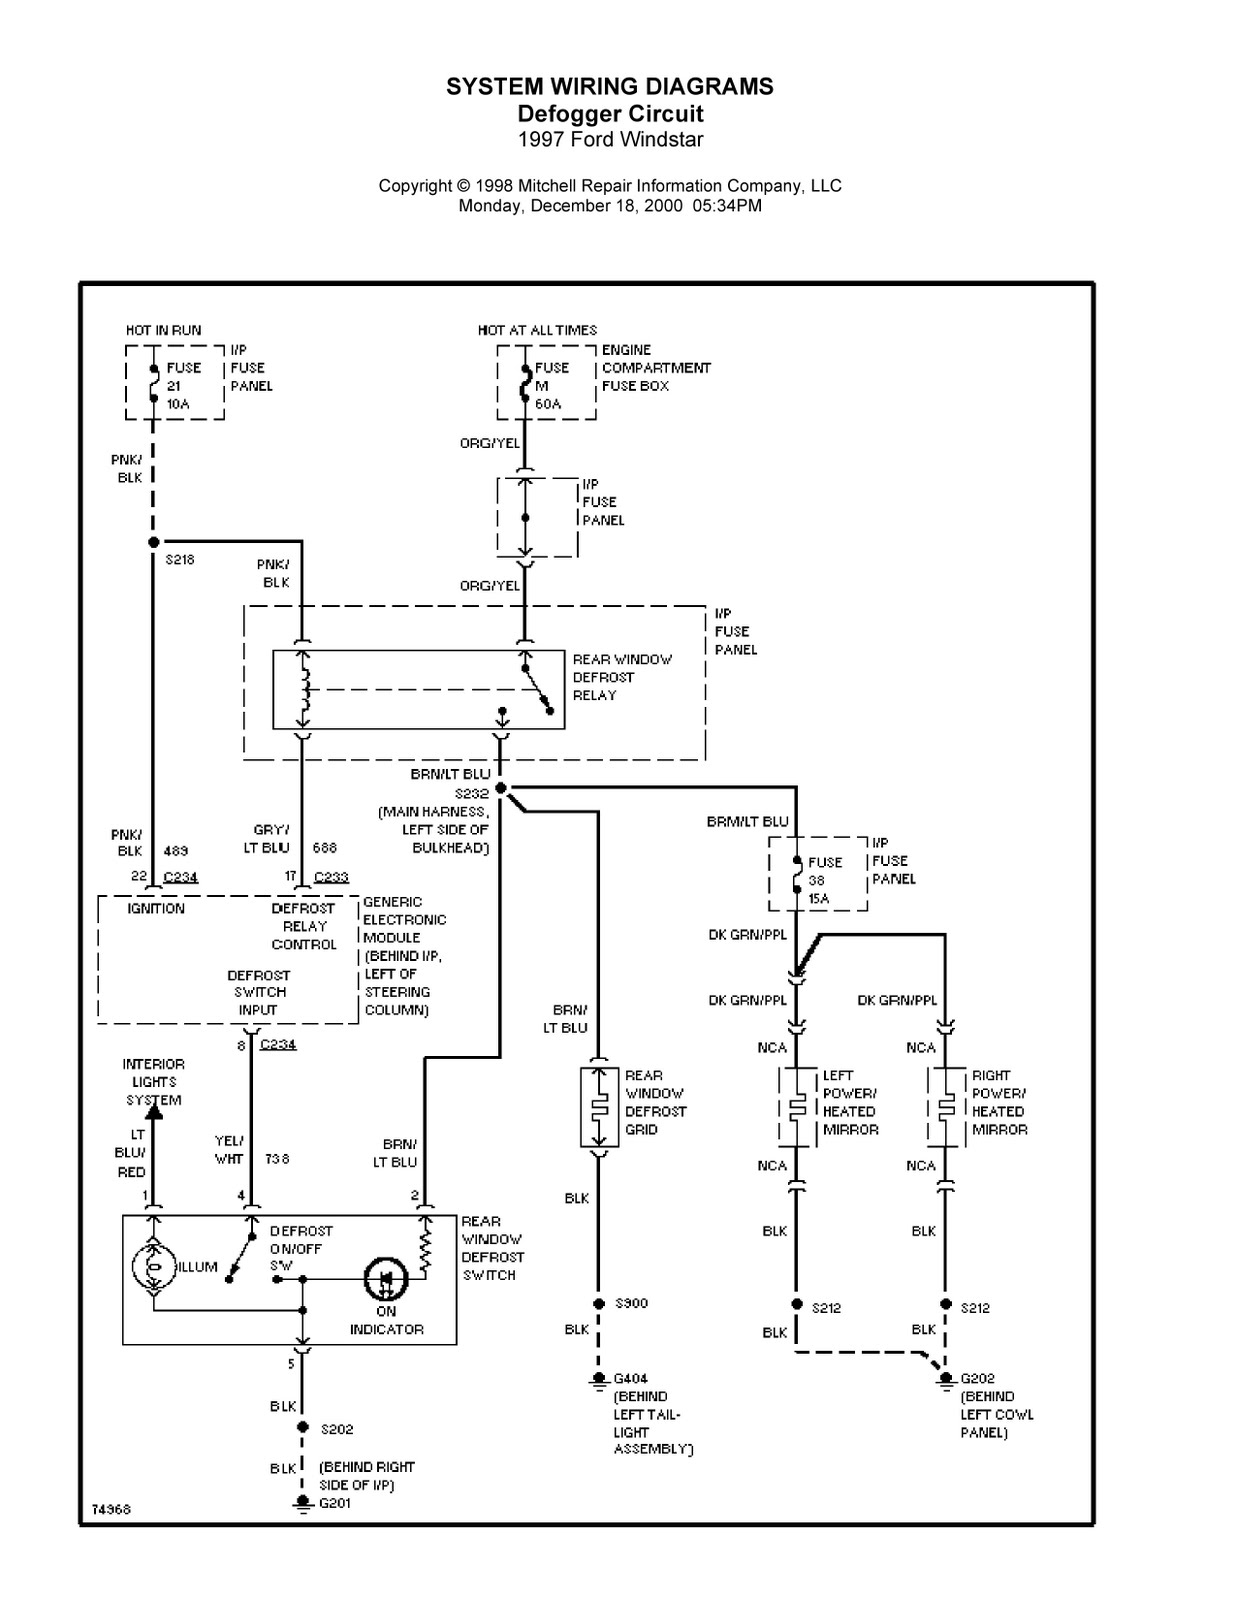 Ford Windstar Complete System Wiring Diagrams